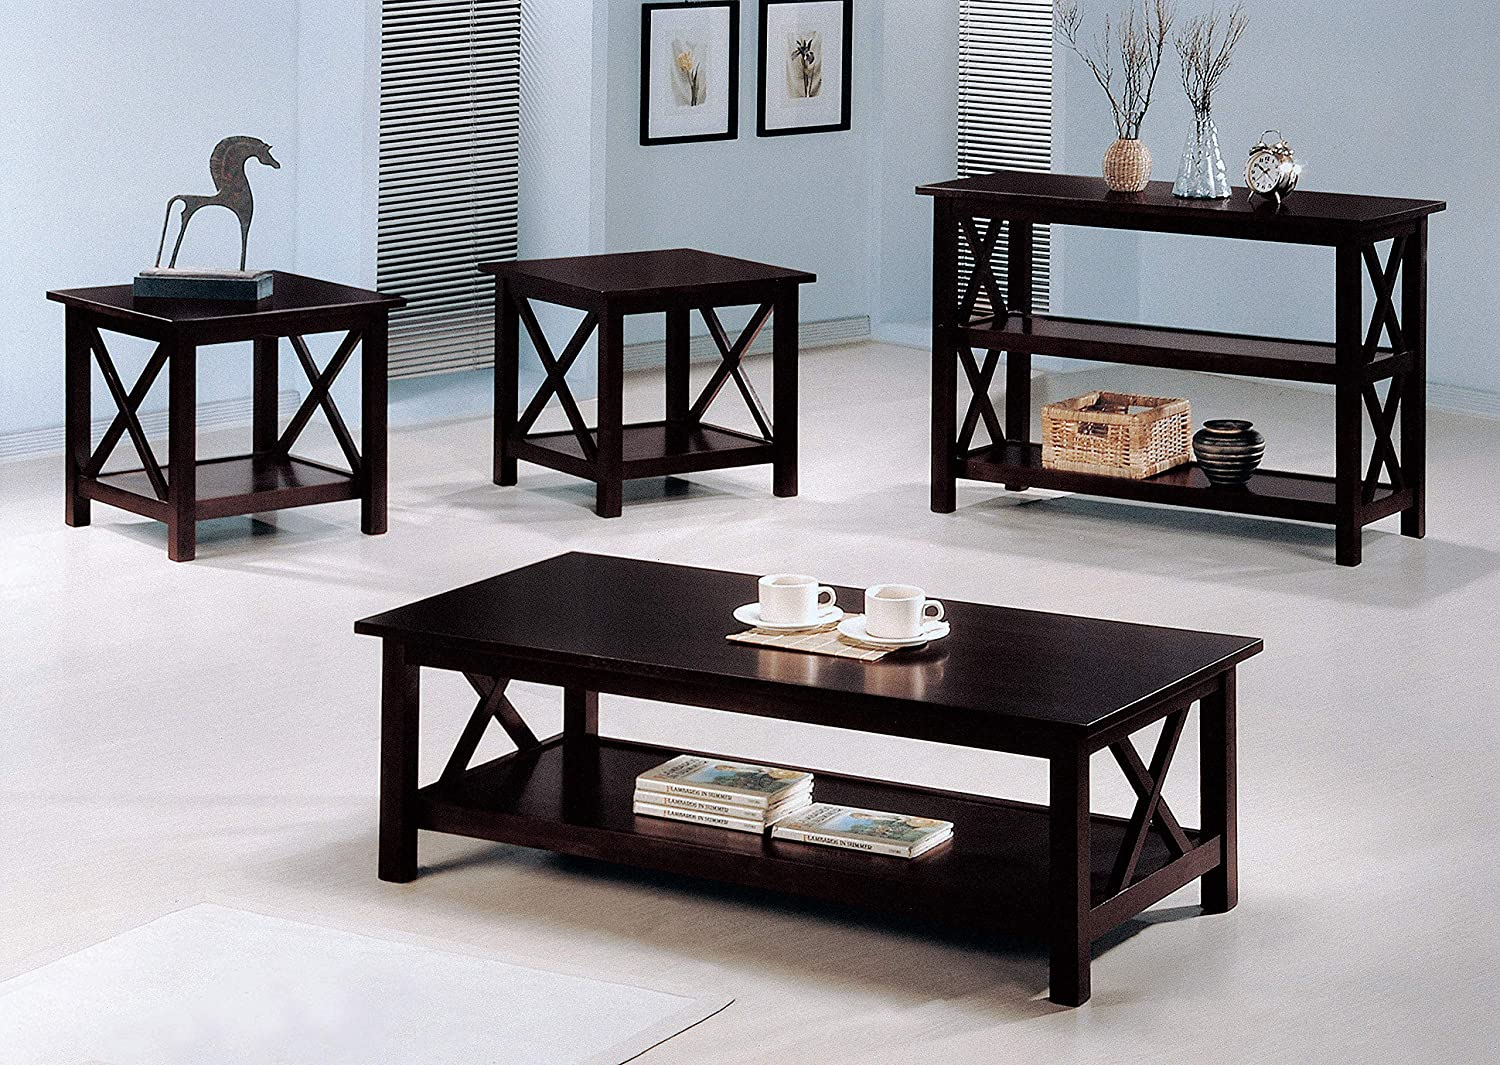 Briarcliff 3 Piece Occasional Table Set Dark Merlot Kitchen Dining